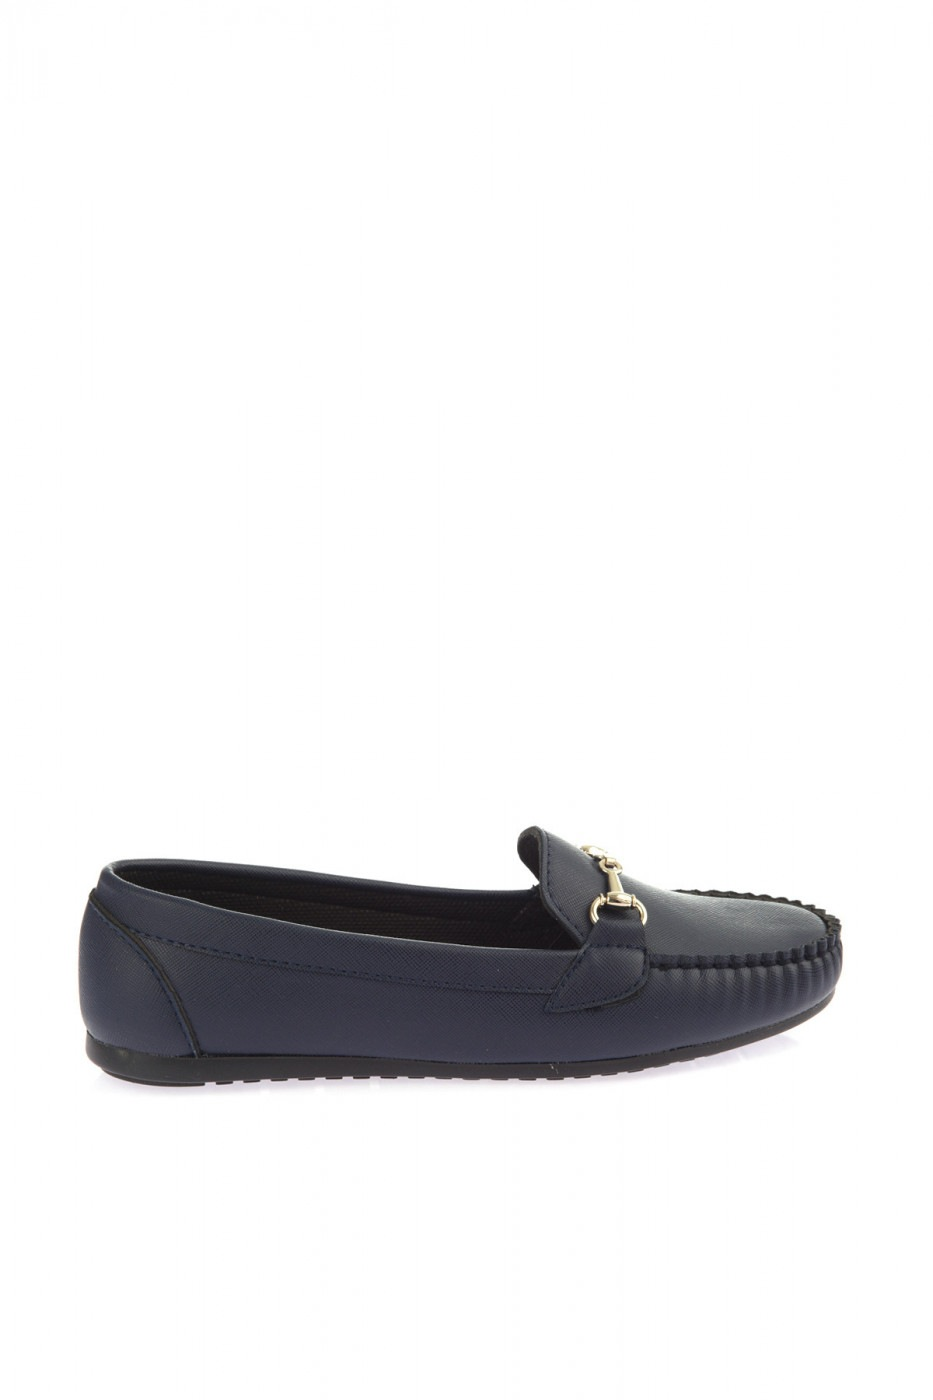 Trendyol Women's Loafer Shoes with Dark Blue Buckle